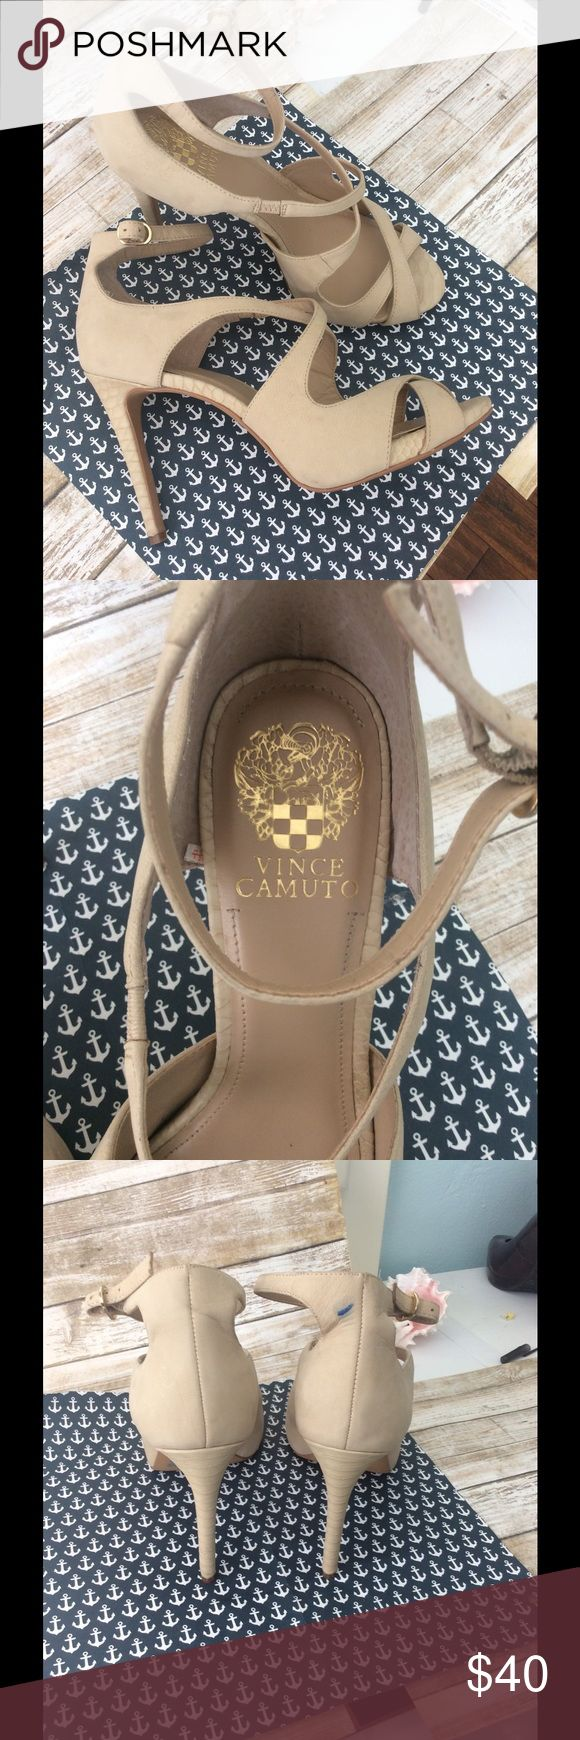 Vince Camuto cream  heel sandals size 71/2 The right shoe has a blue mark in the back I haven tried to remove, see picture. Vince Camuto Shoes Heels